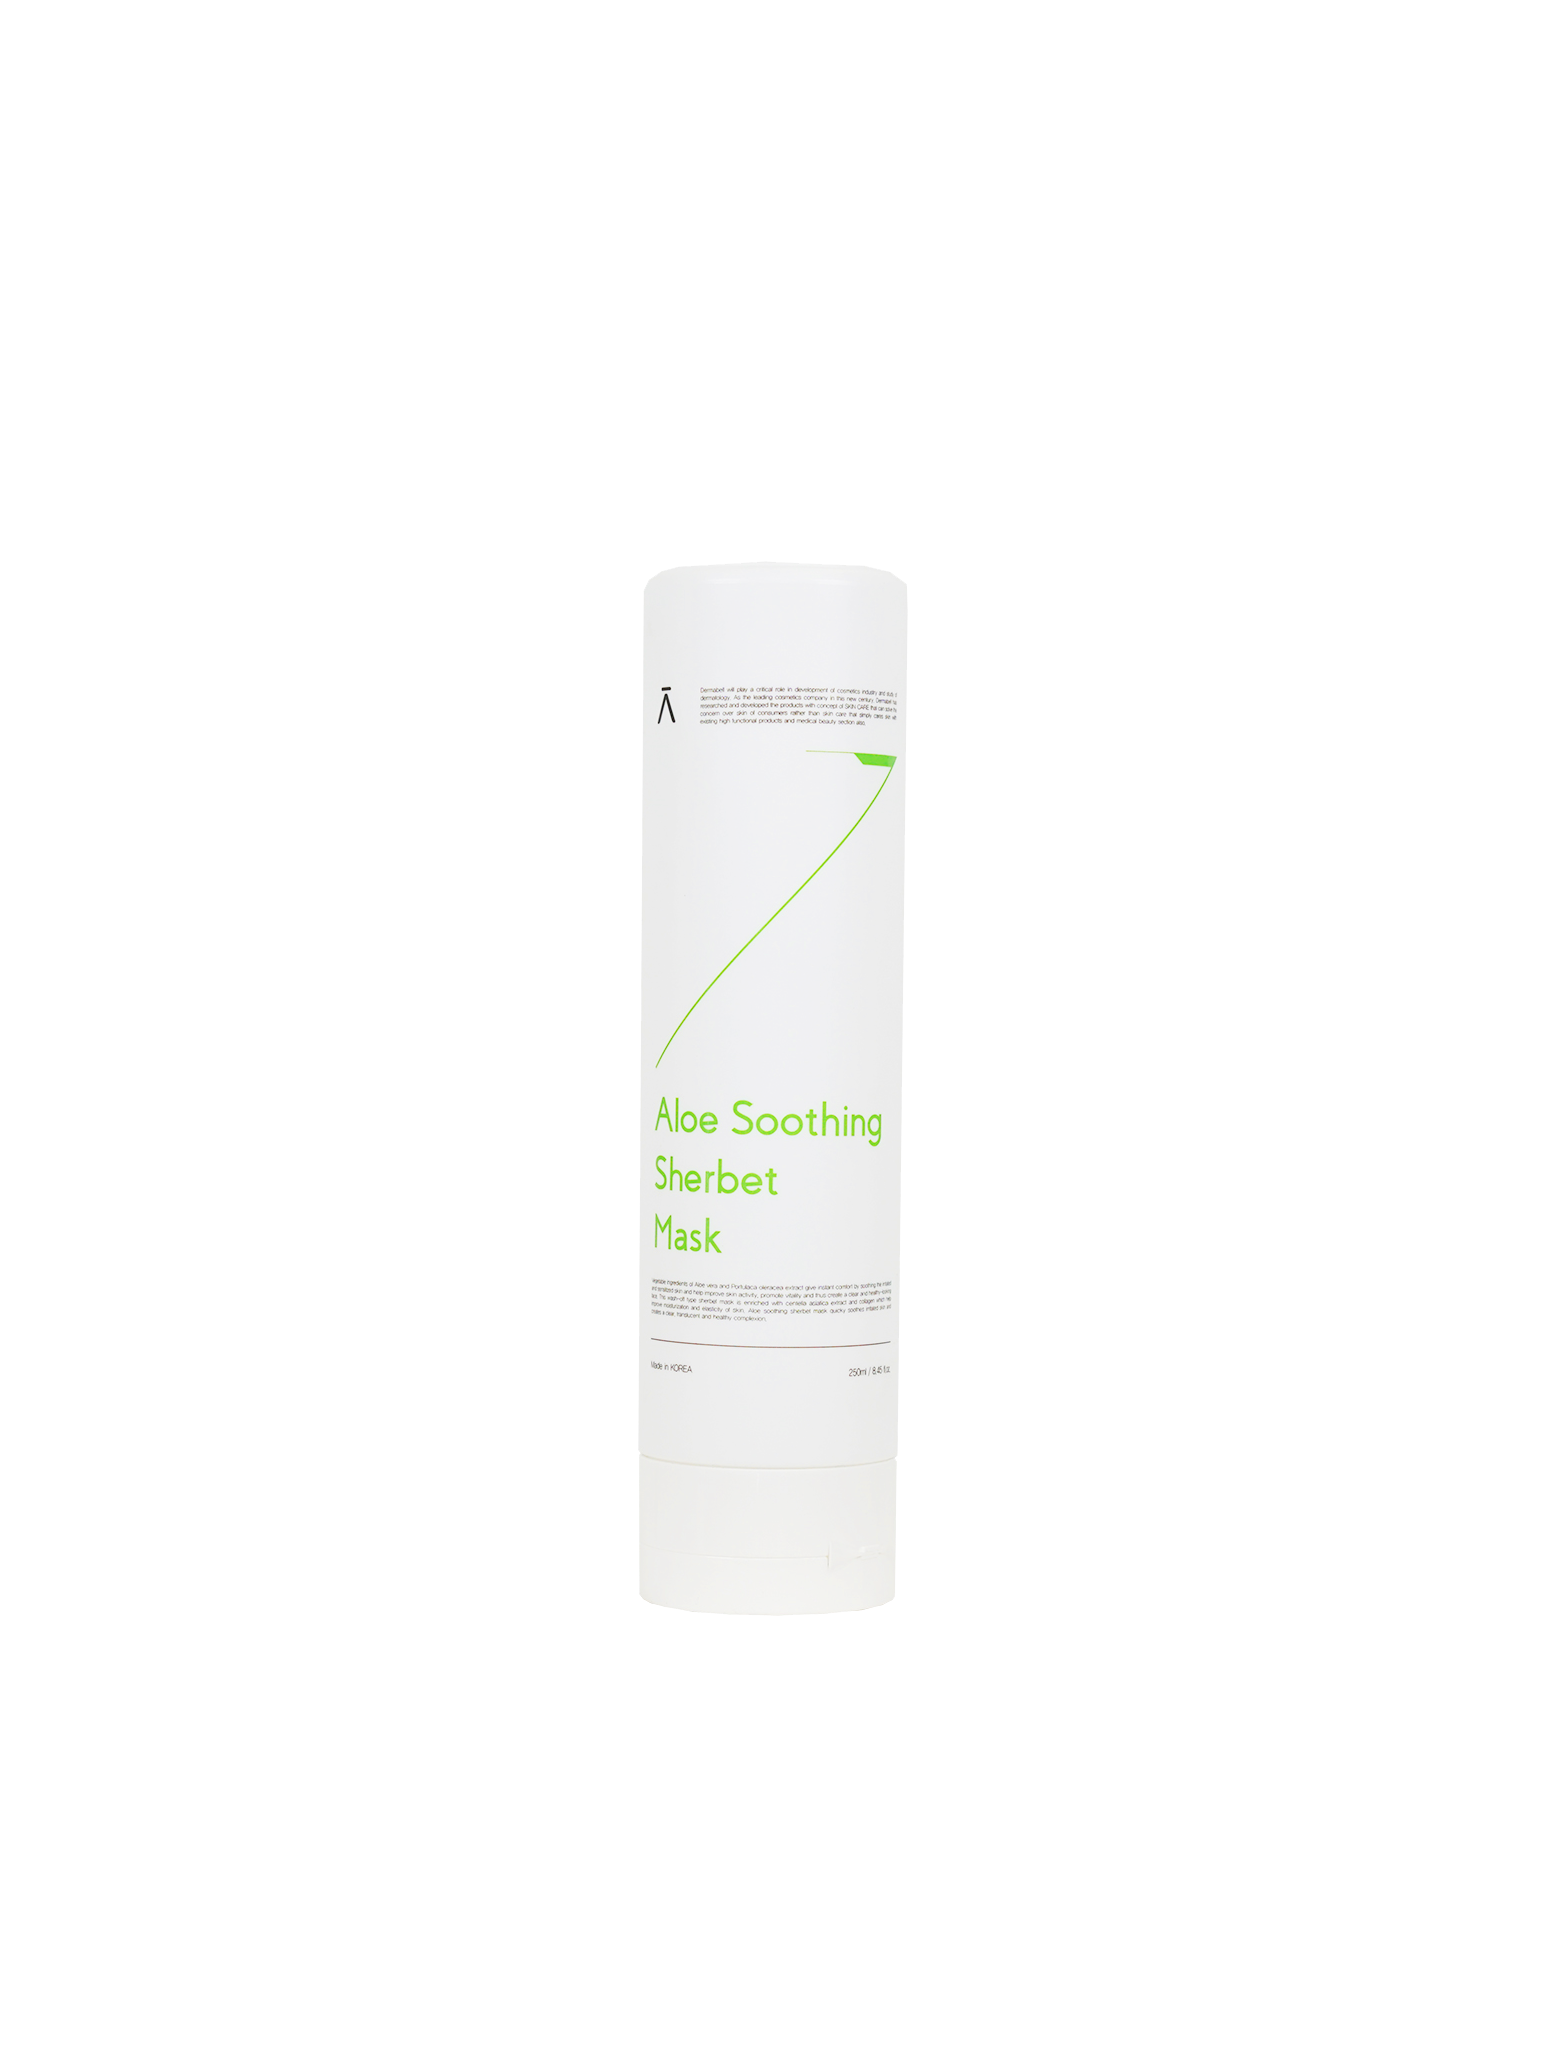 Aloe Soothing Serbet Mask